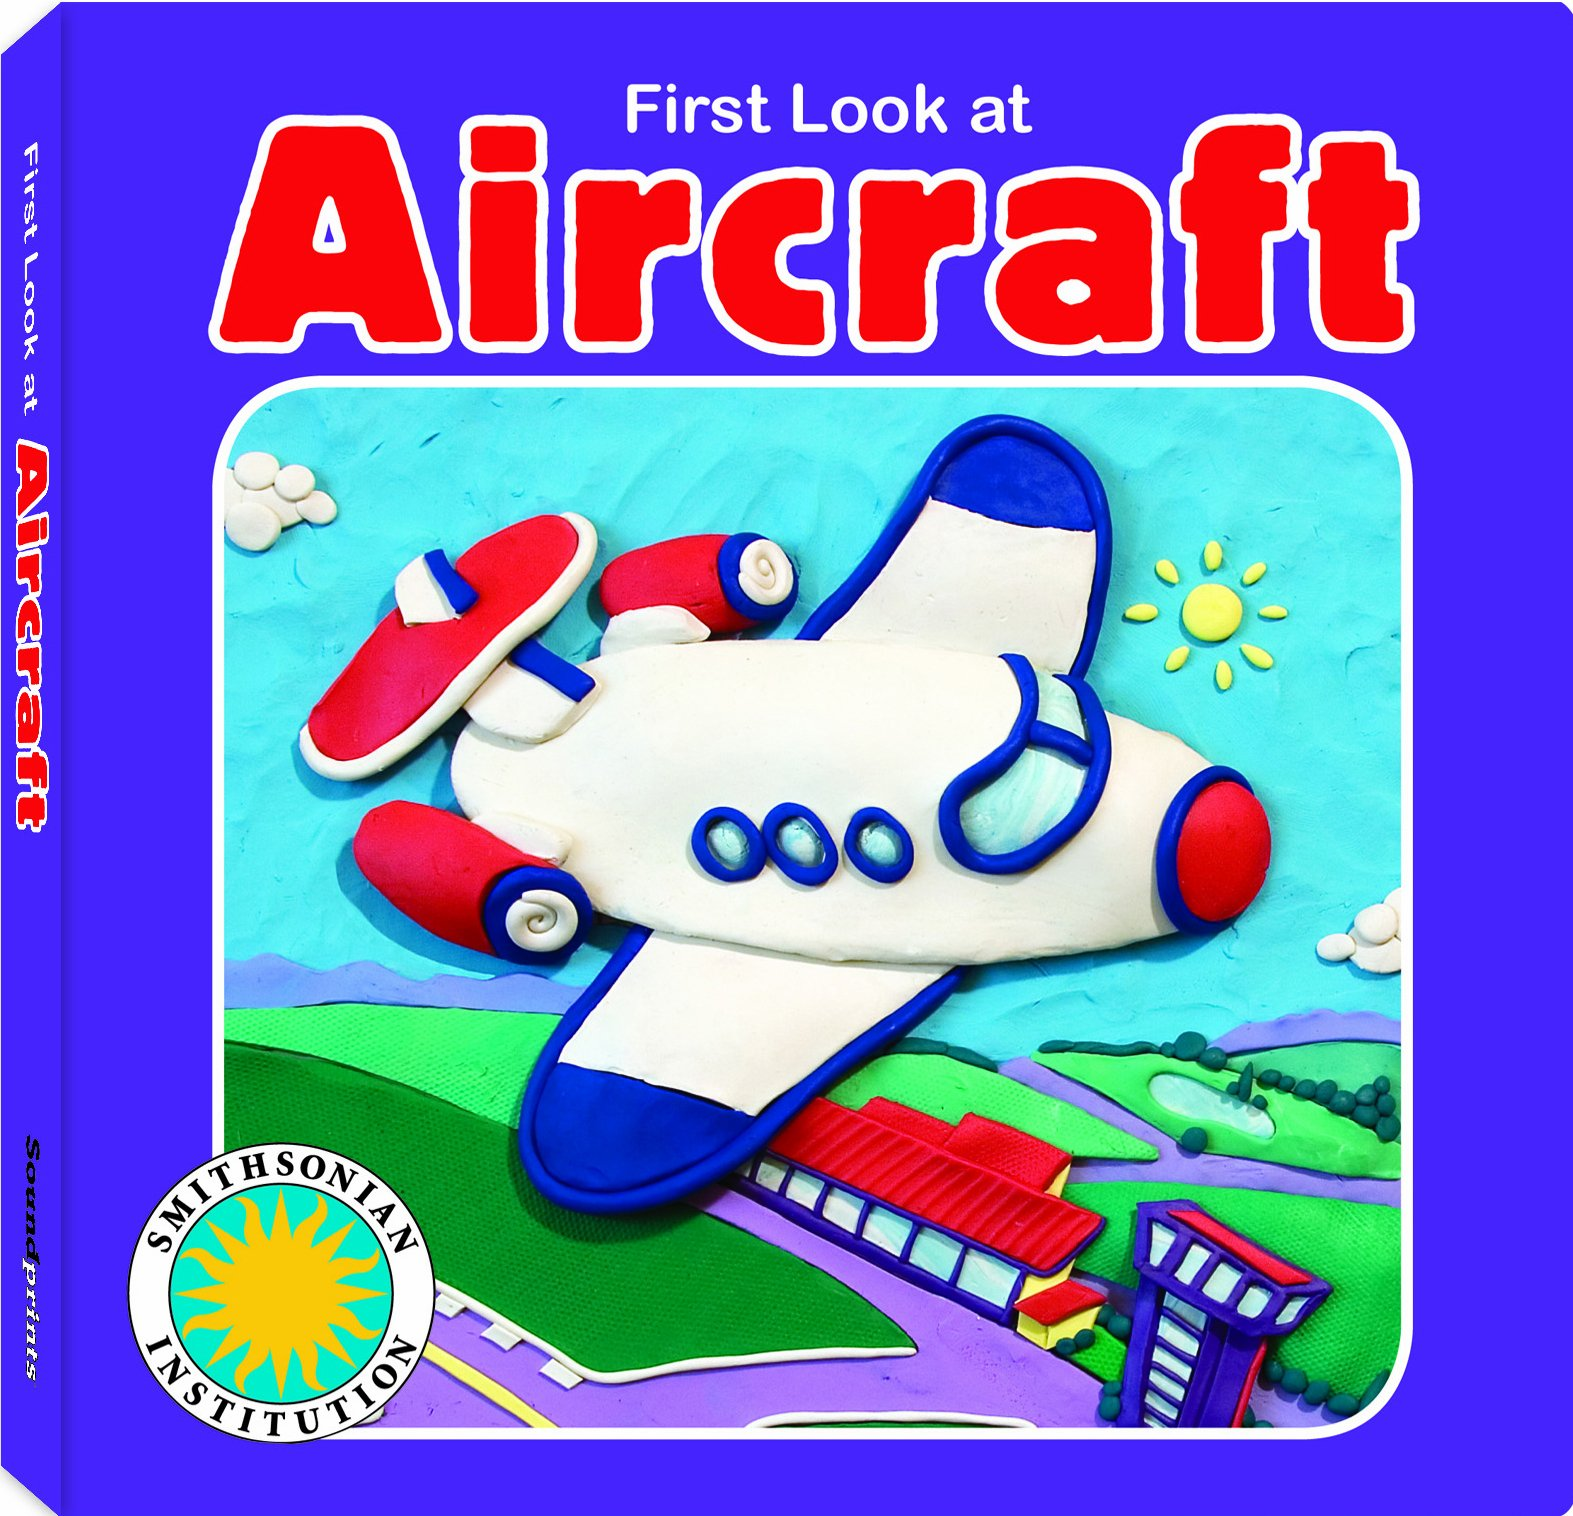 First Look at Aircraft - a Smithsonian First Look Book ebook